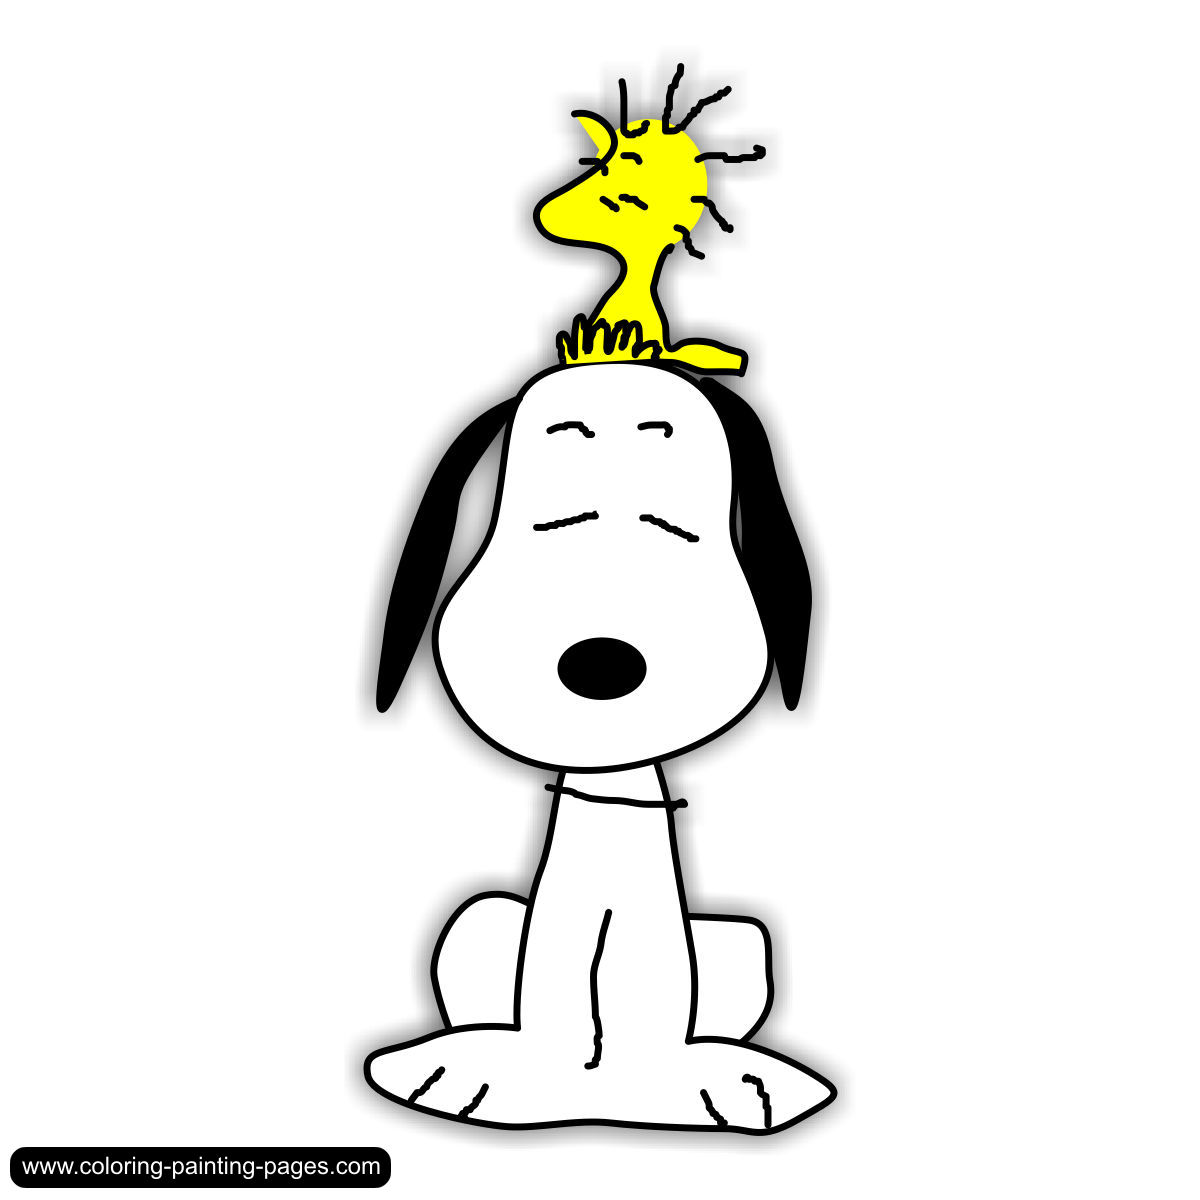 Clipart Snoopy